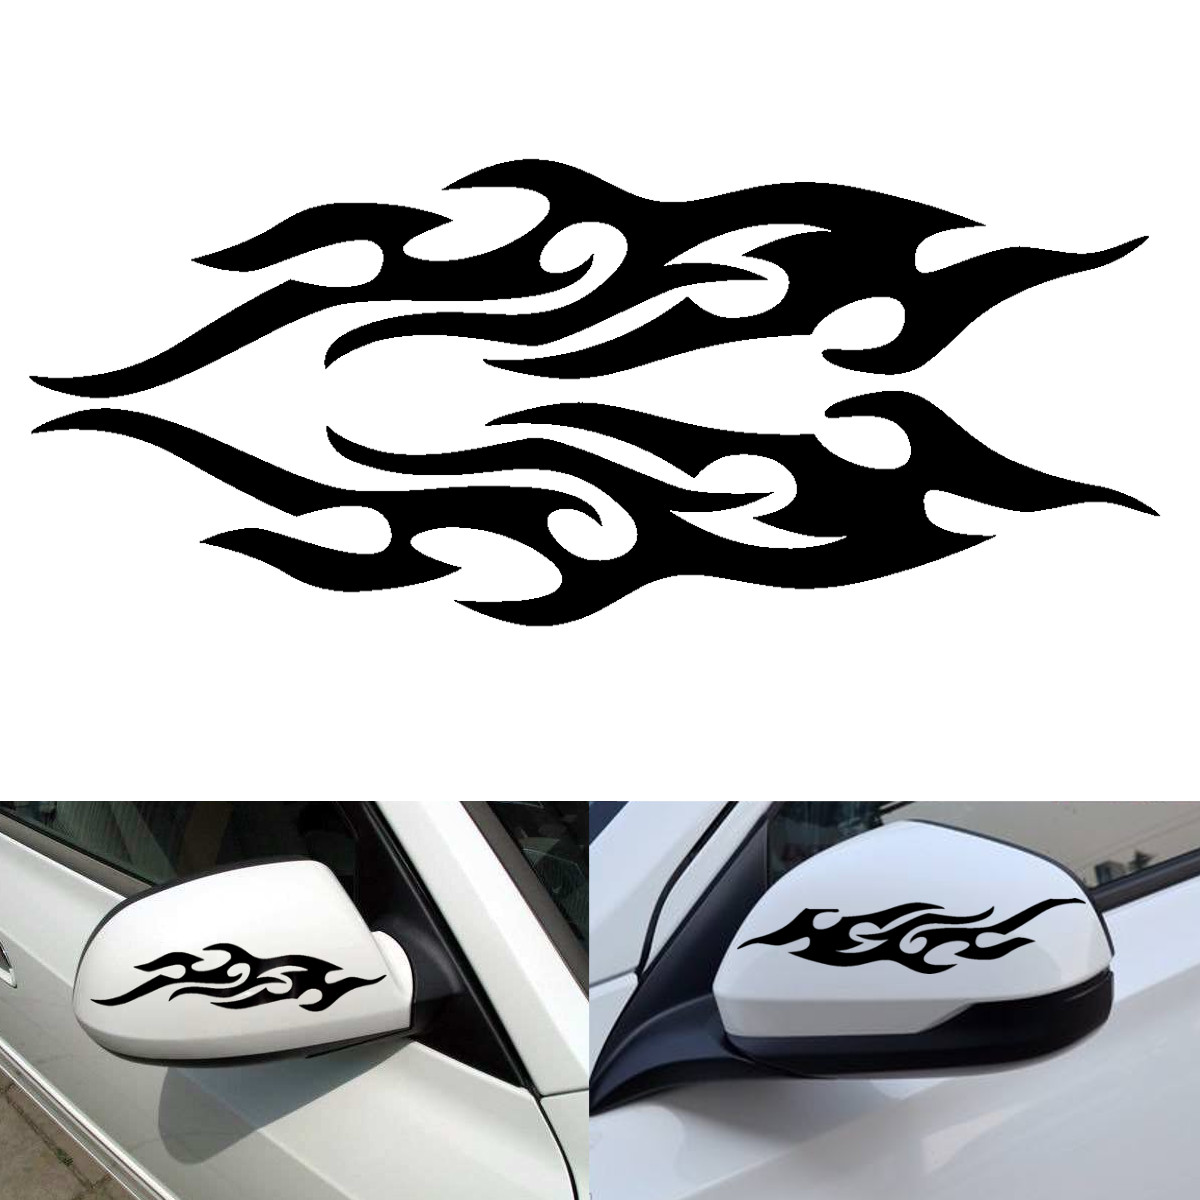 Bike stickers design online - Universal Car Truck Bicycle Black Flame Body Mirror Decal Vinyl Graphics Side Sticker 20 X 8cm